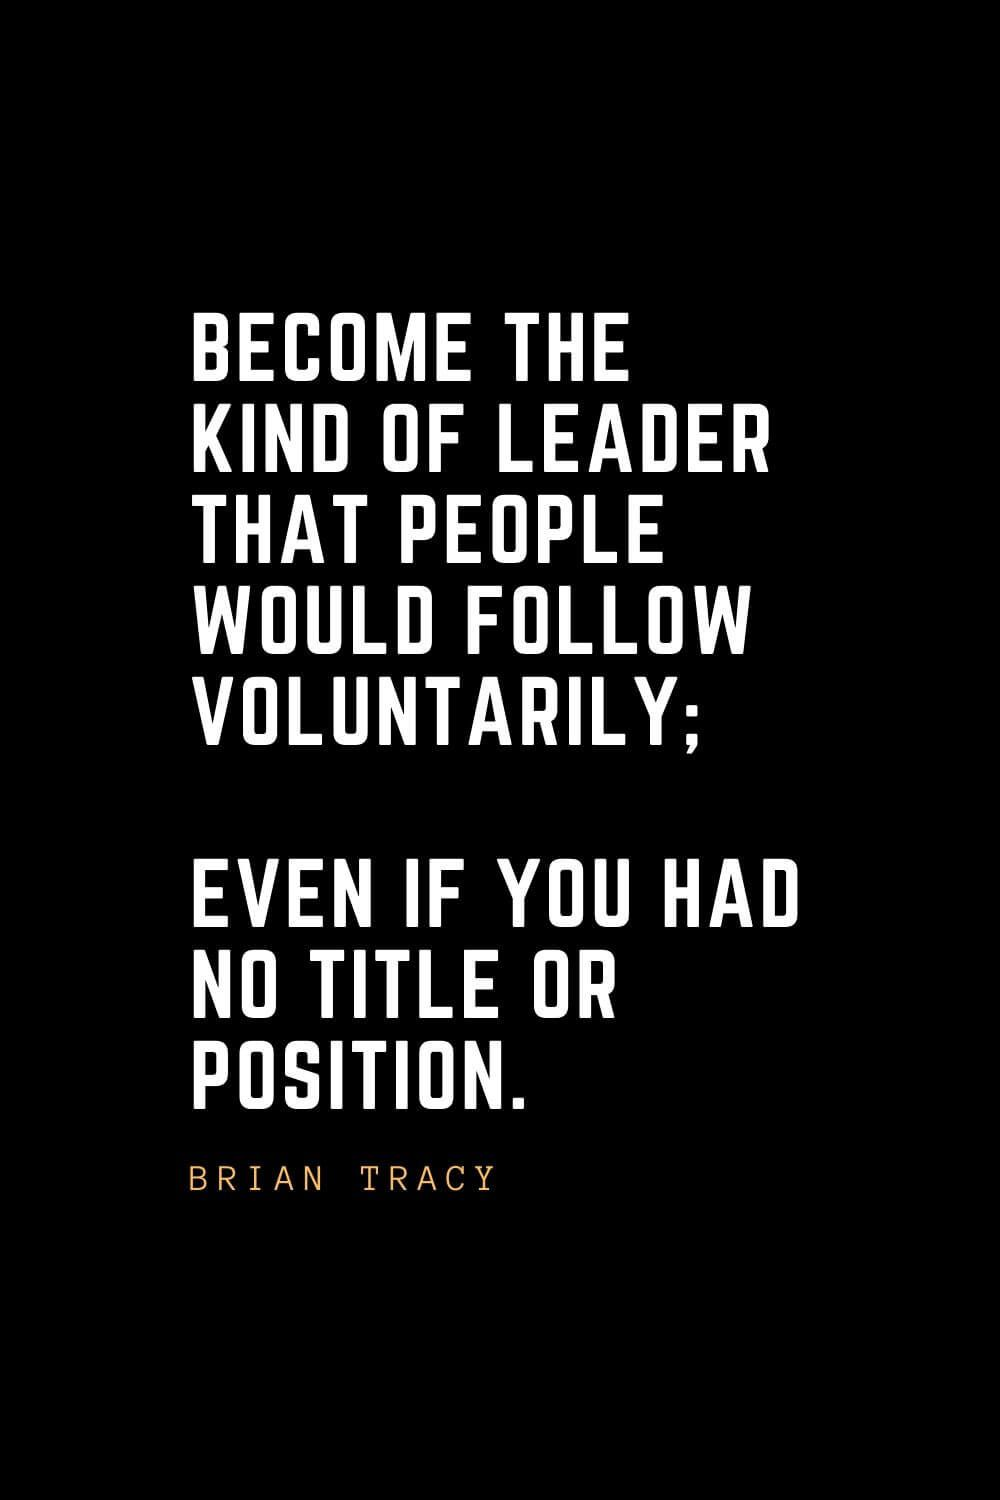 Inspiring Leadership Quotes Images